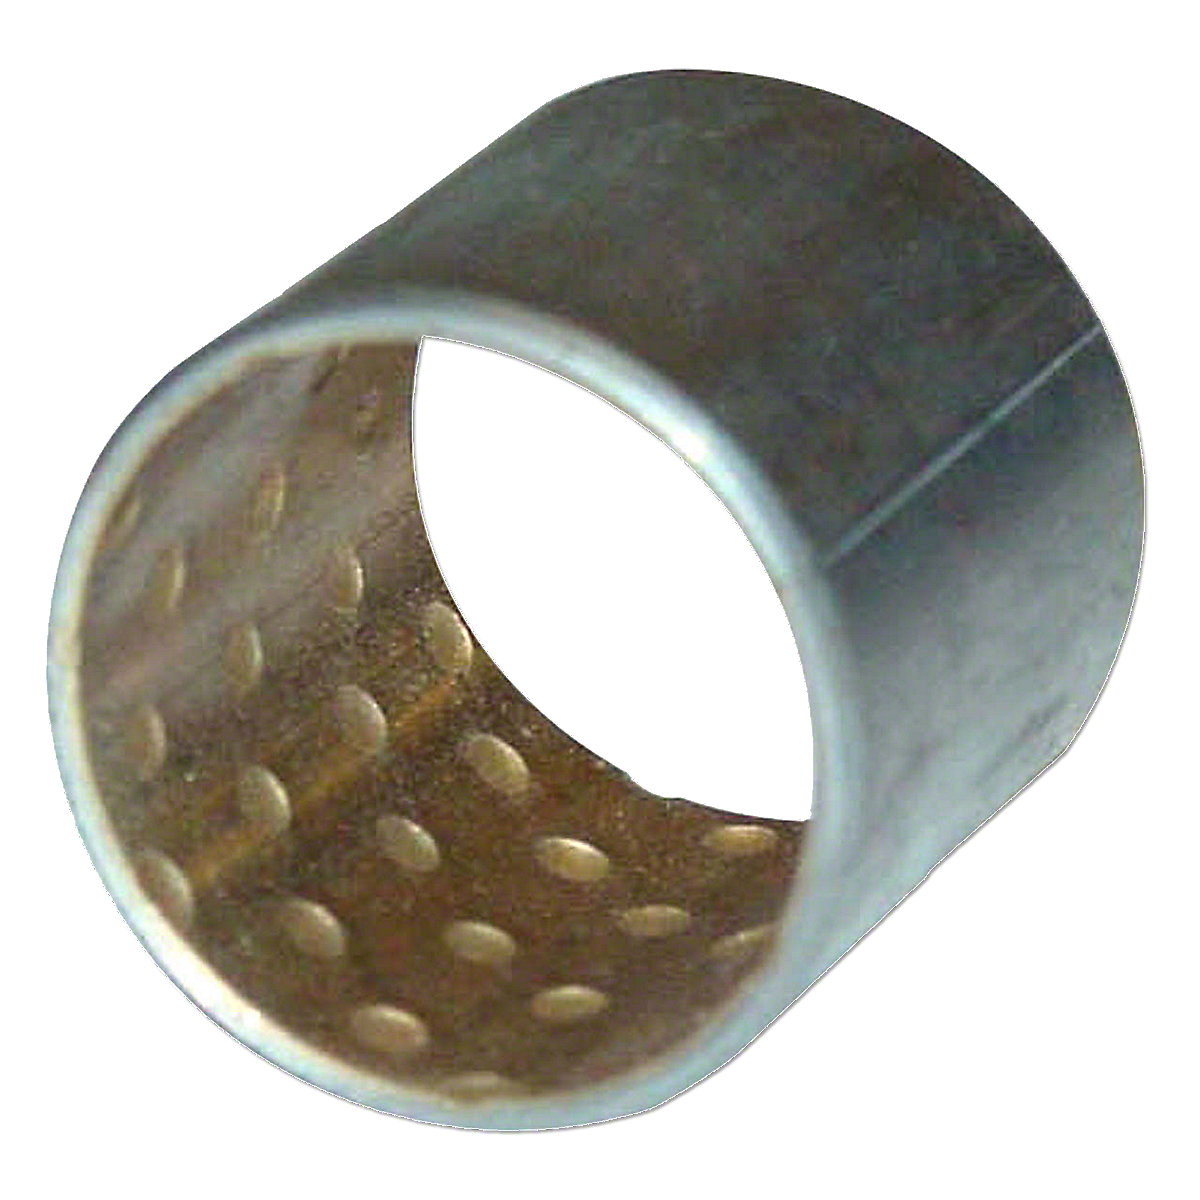 Throttle Quadrant Bushing For Allis Chalmers: WD, WD45.